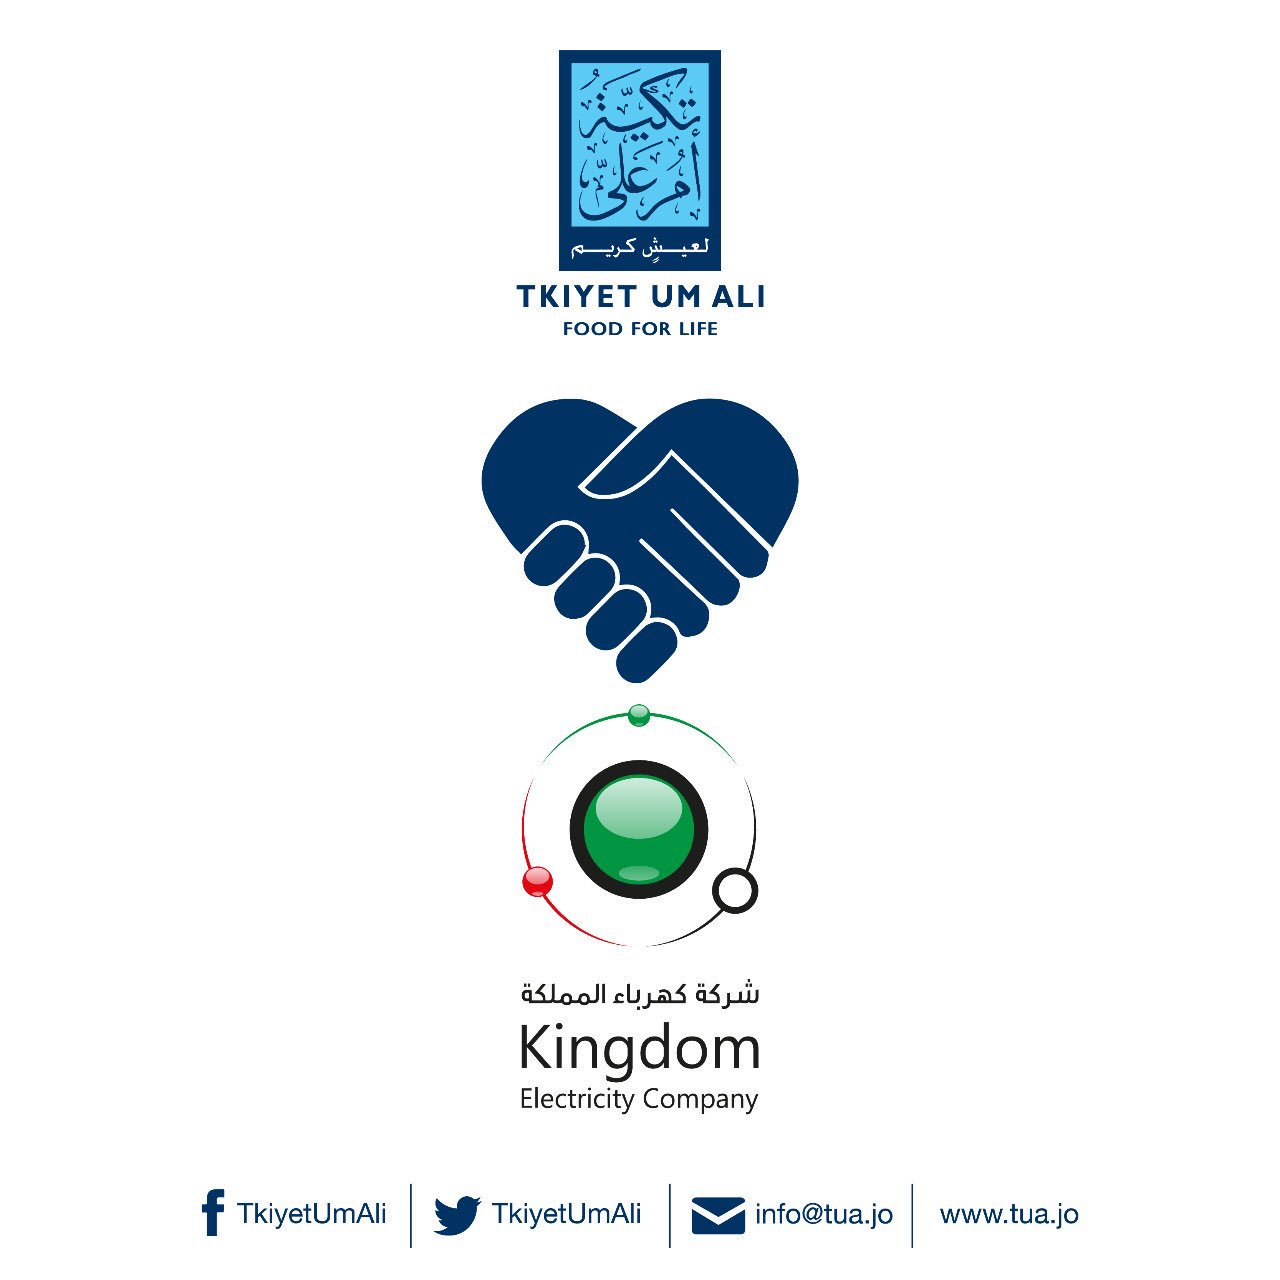 KEC Signs MOU with Tkiyet Um Ali to Eradicate Hunger in Jordan